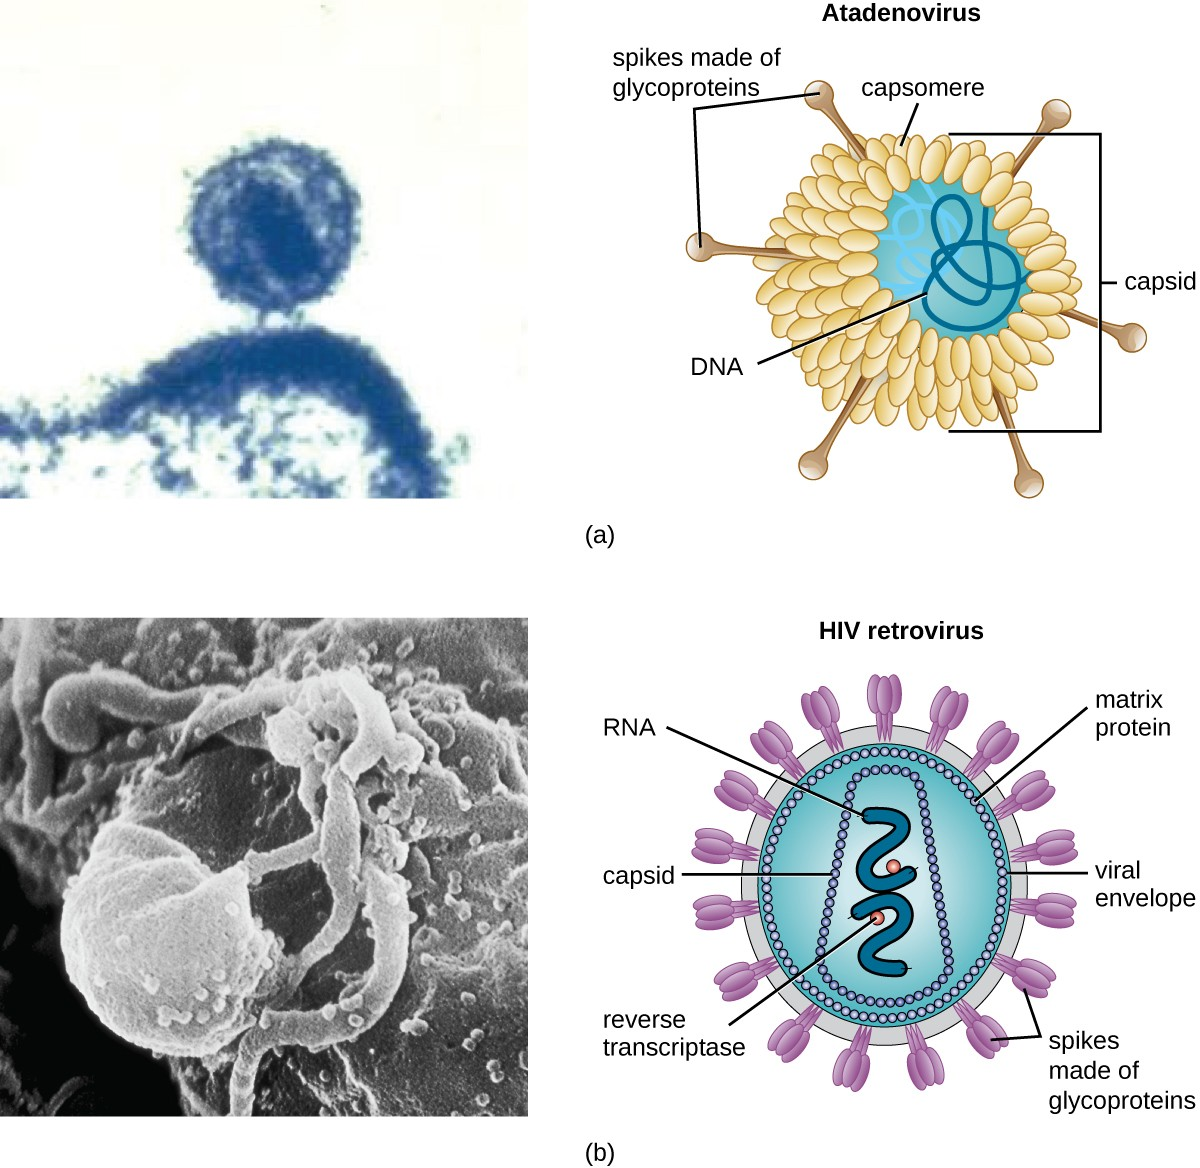 (a) The naked atadenovirus uses spikes made of glycoproteins from its capsid to bind to host cells. (b) The enveloped human immunodeficiency virus uses spikes made of glycoproteins embedded in its envelope to bind to host cells